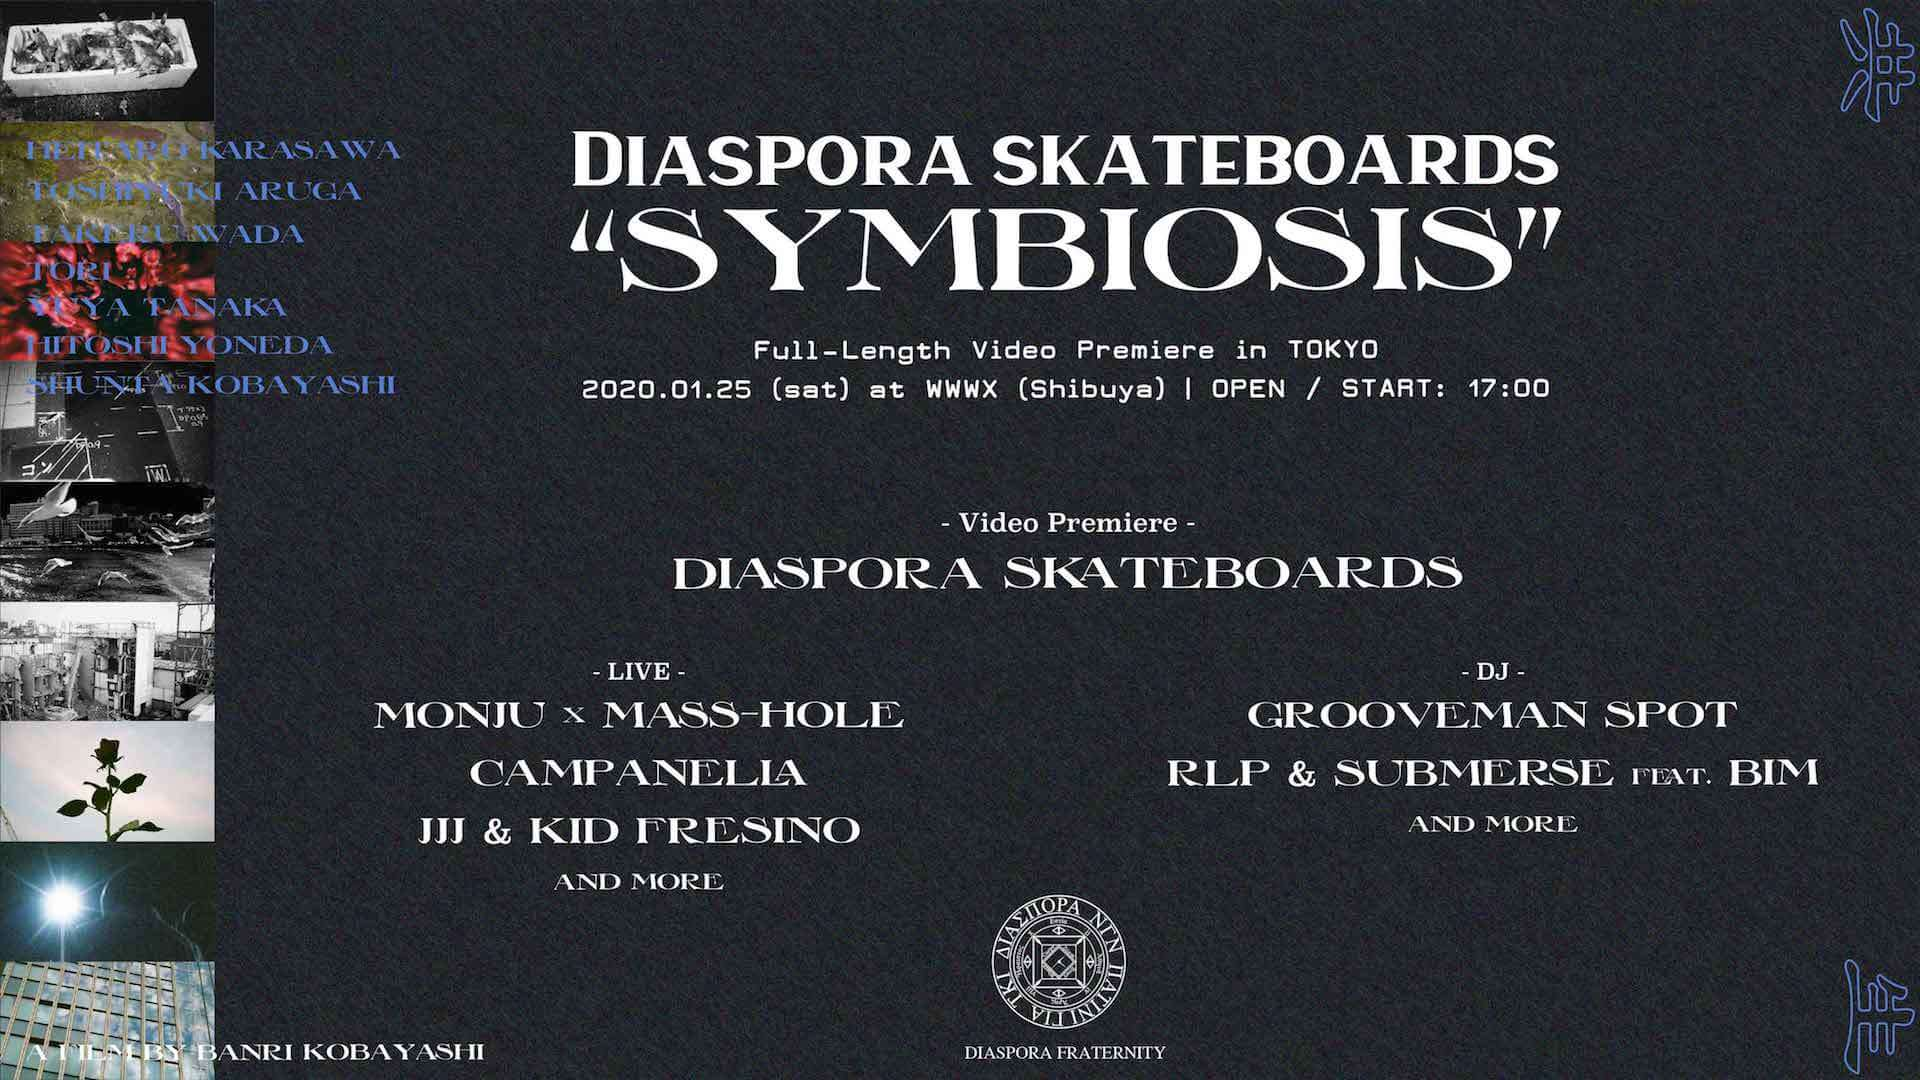 Diaspora skateboardsのフルレングスビデオ試写イベントが開催決定|MONJU×MASS-HOLE、JJJ & KID FRESINOが登場 music191203_diasporaskateboards_1